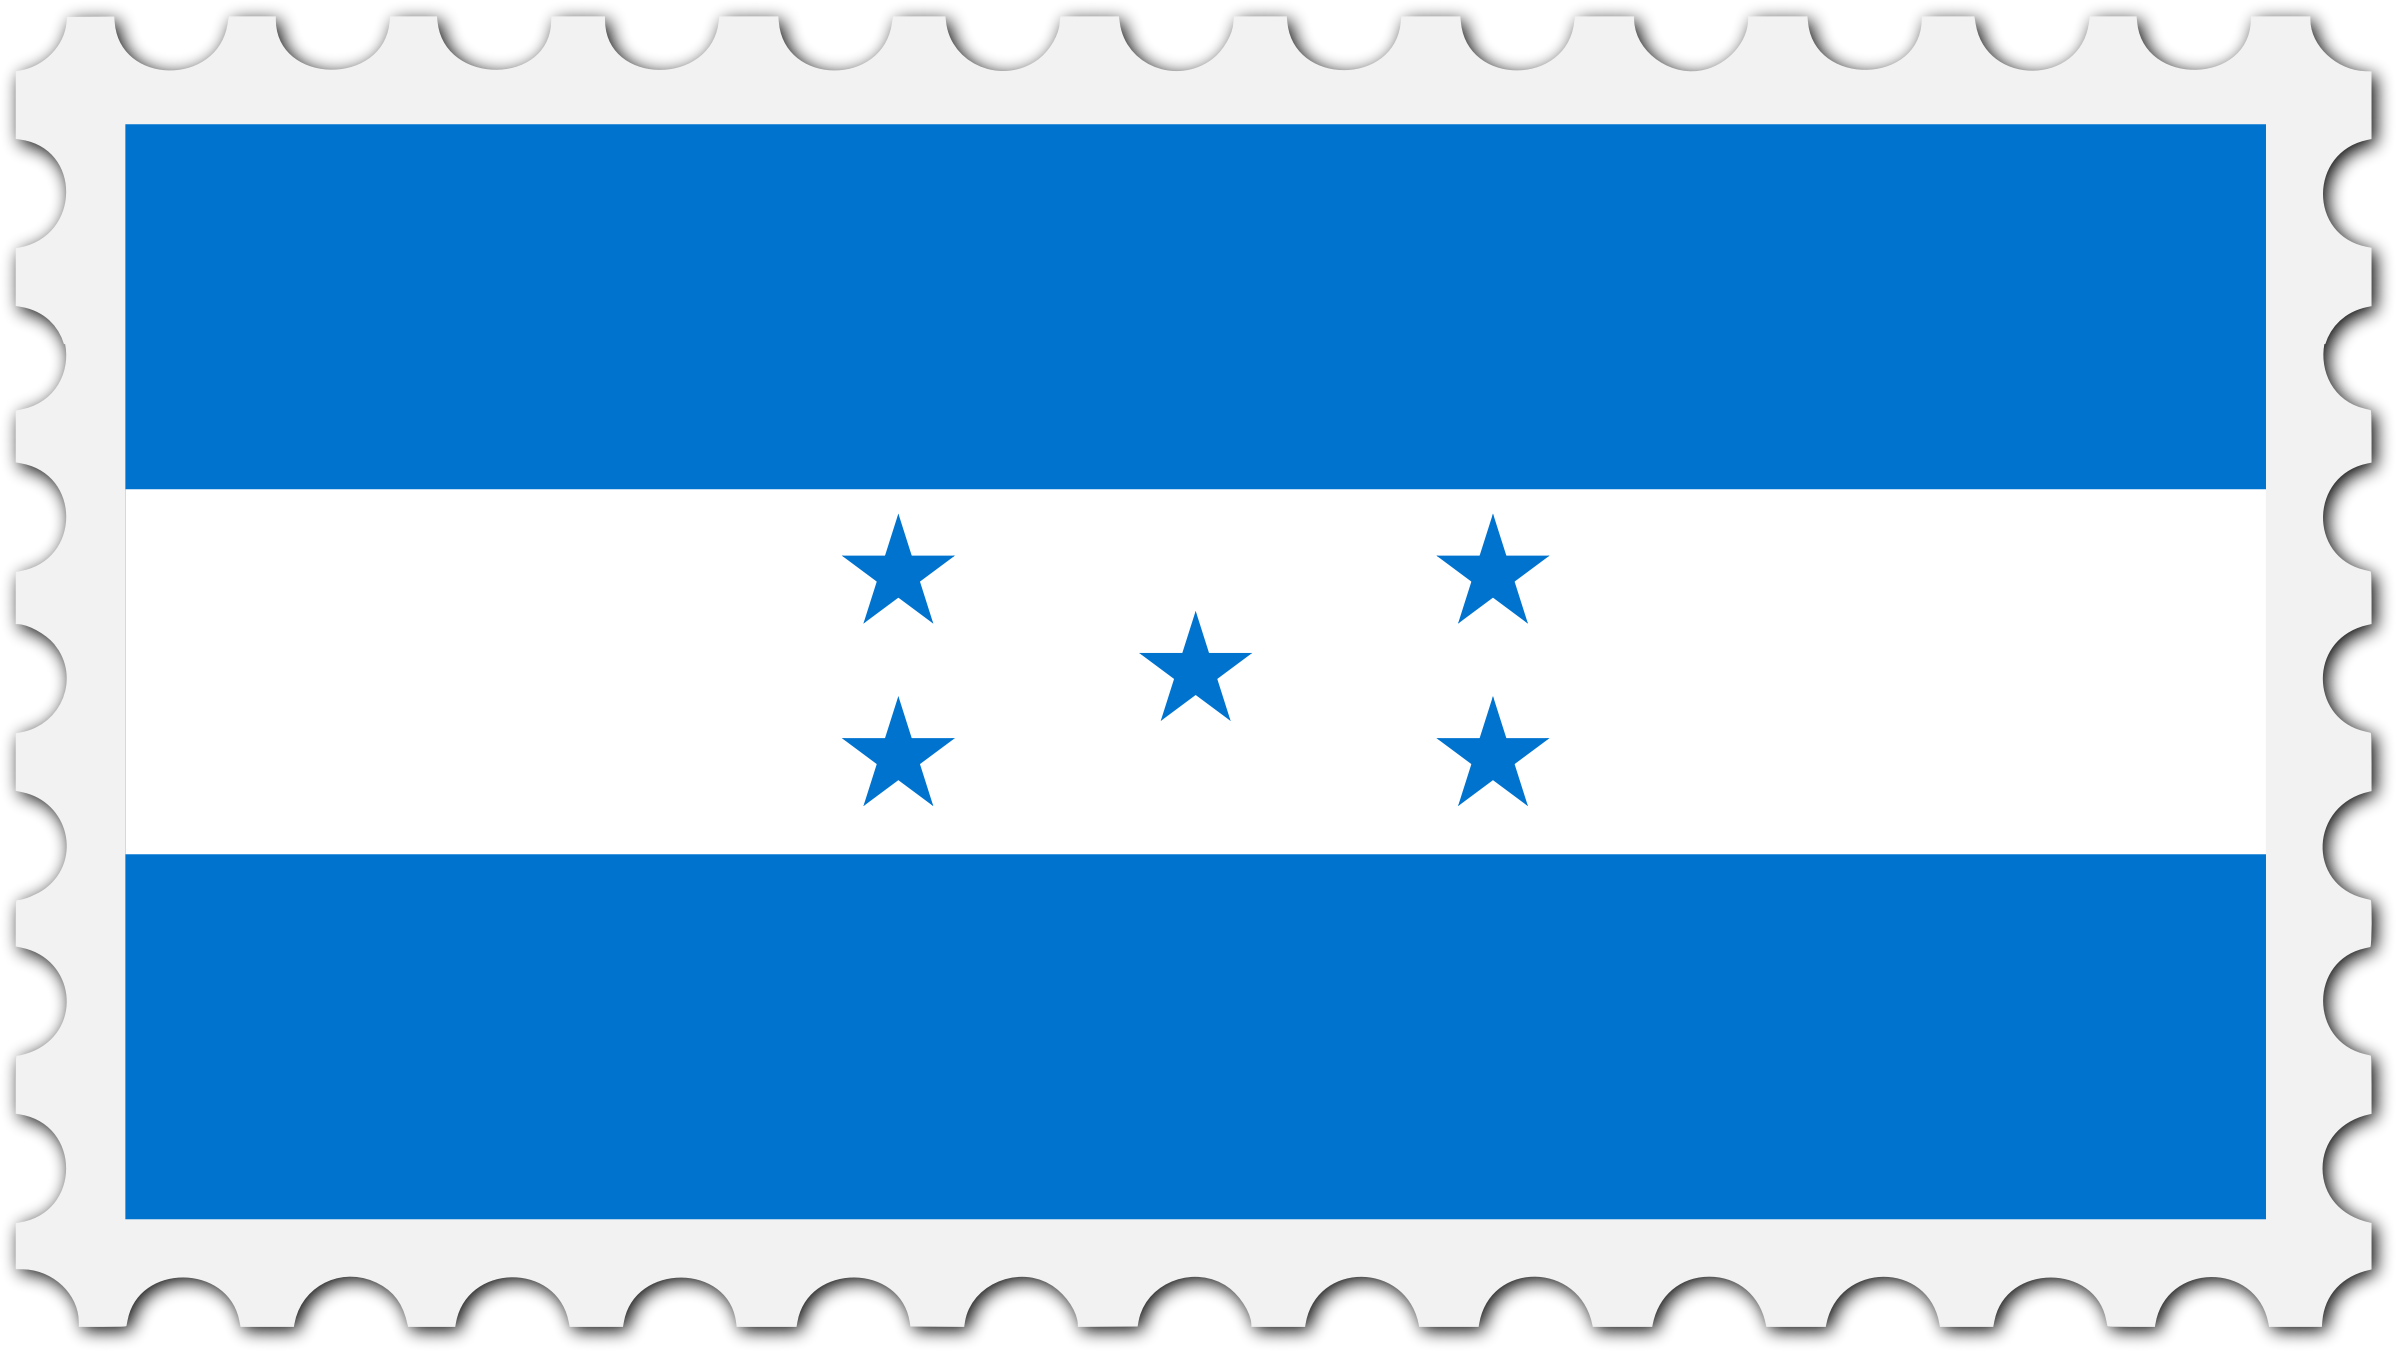 Honduras flag stamp by Firkin